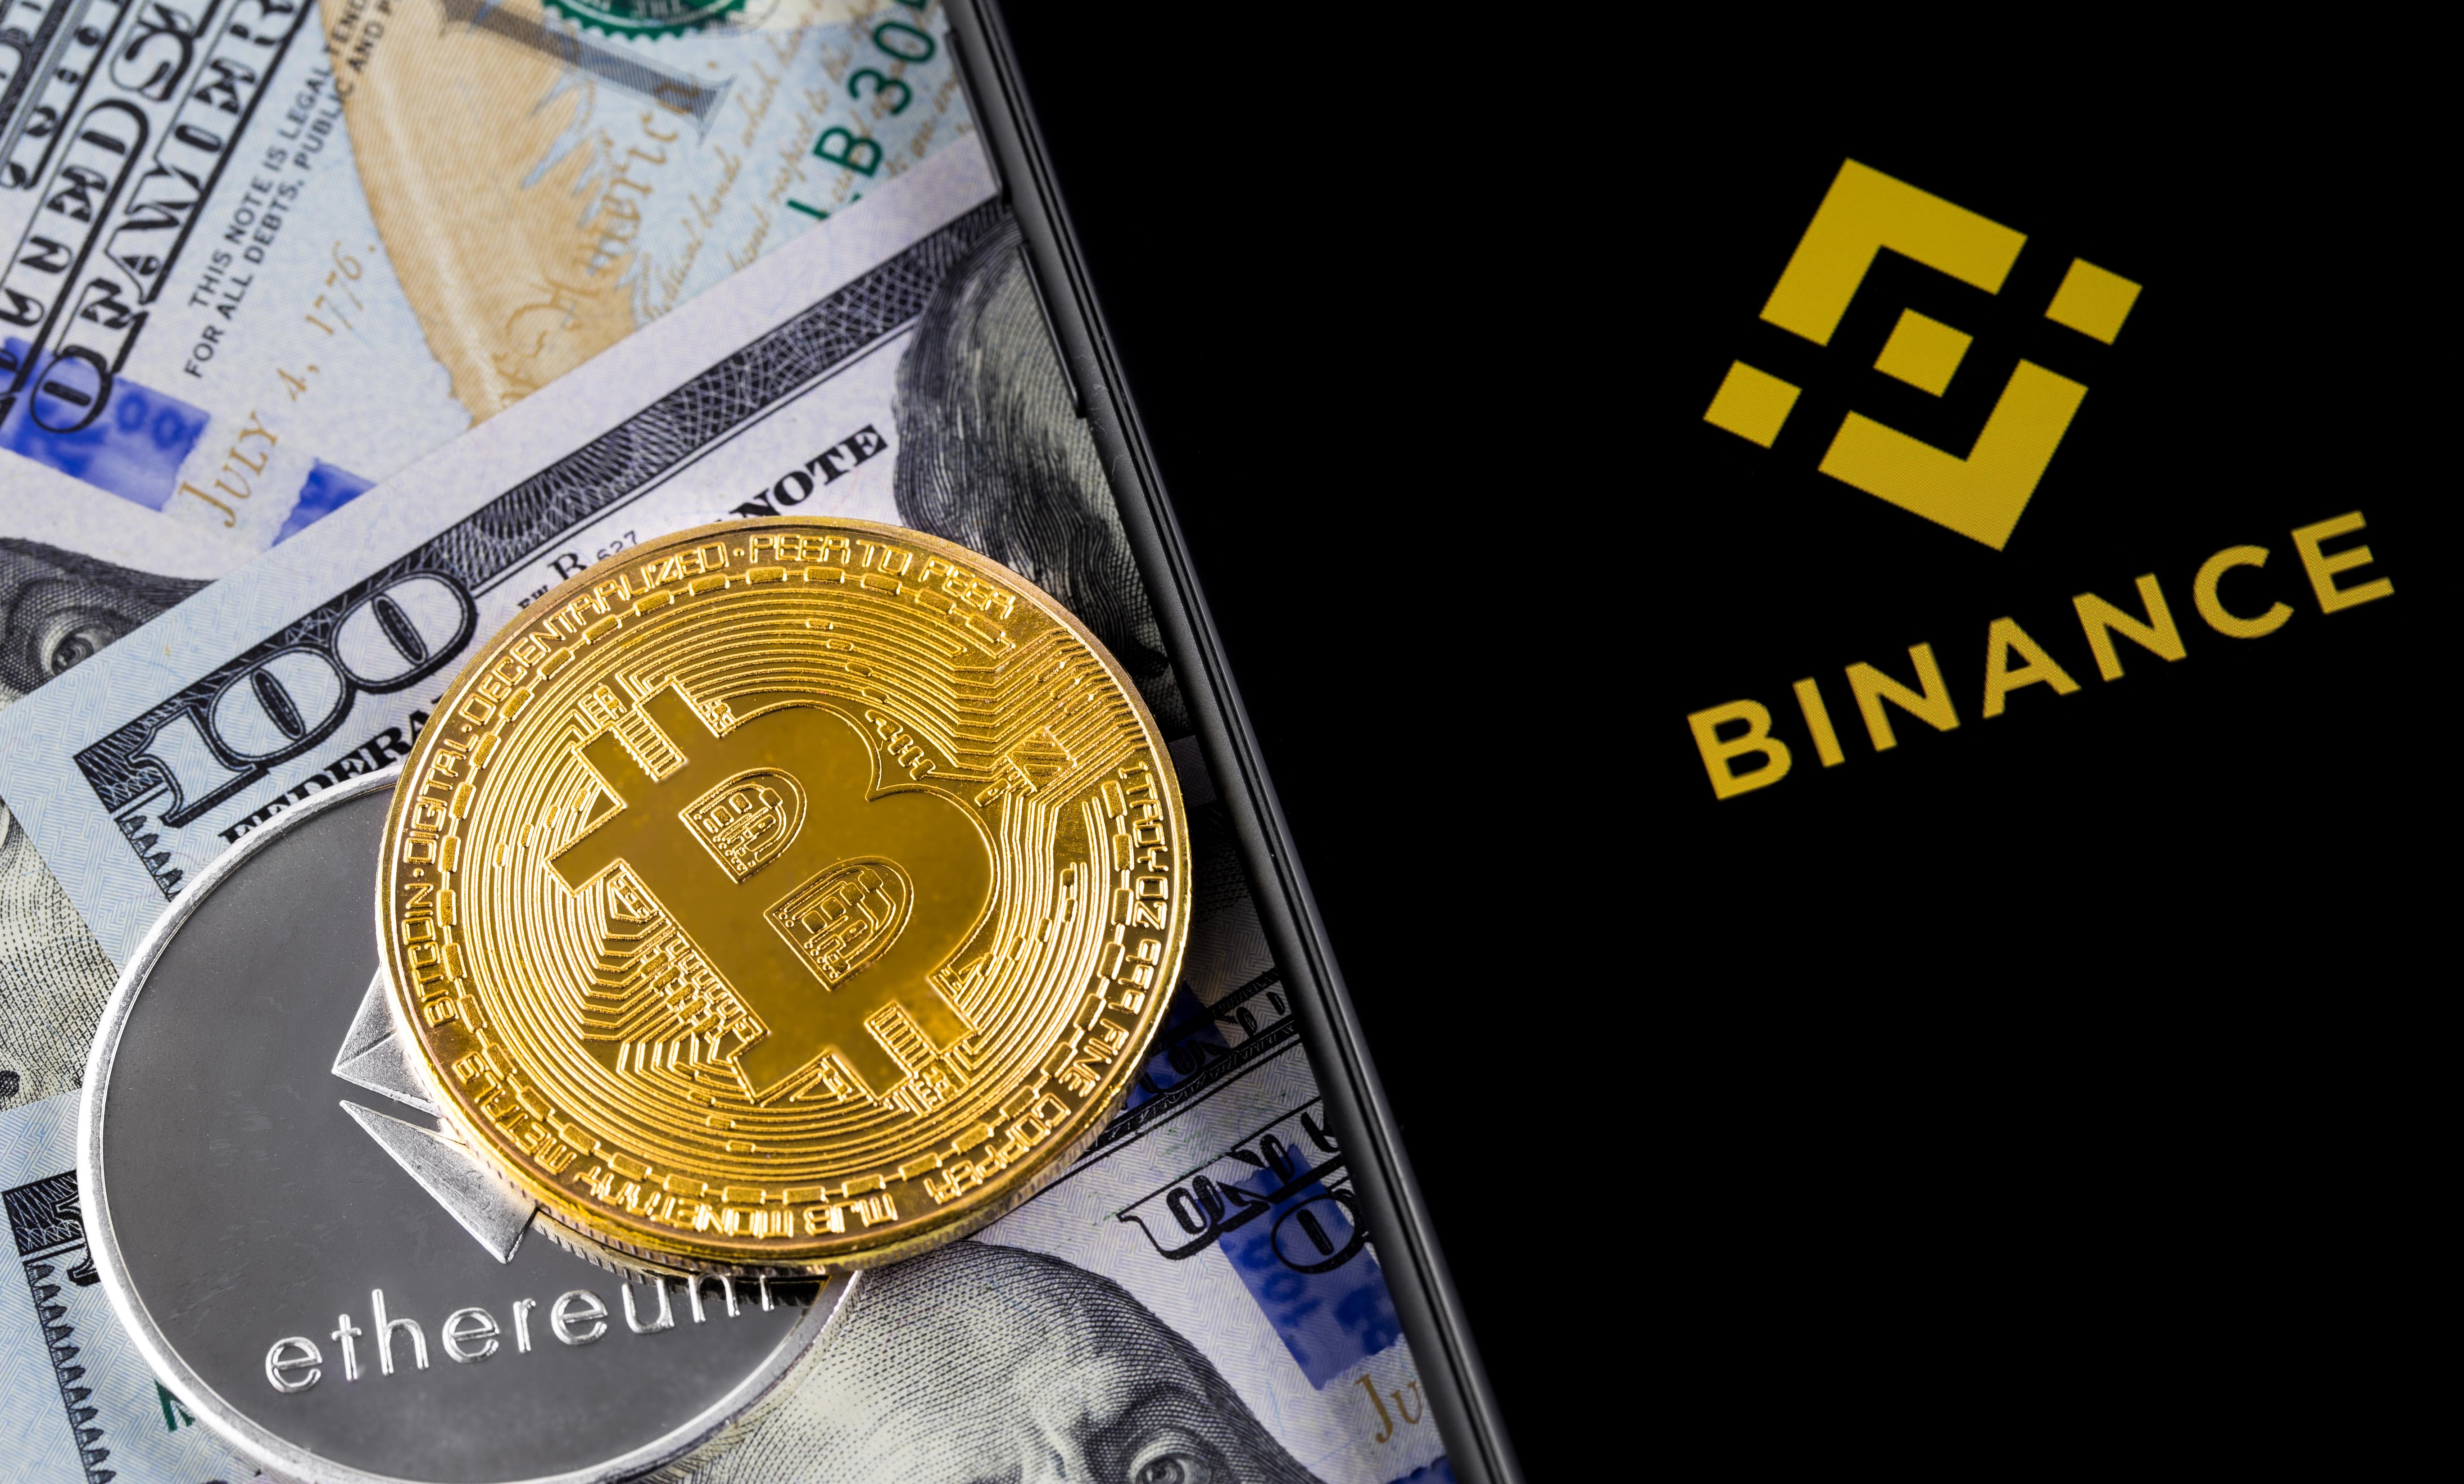 How to Withdraw Money from Binance?